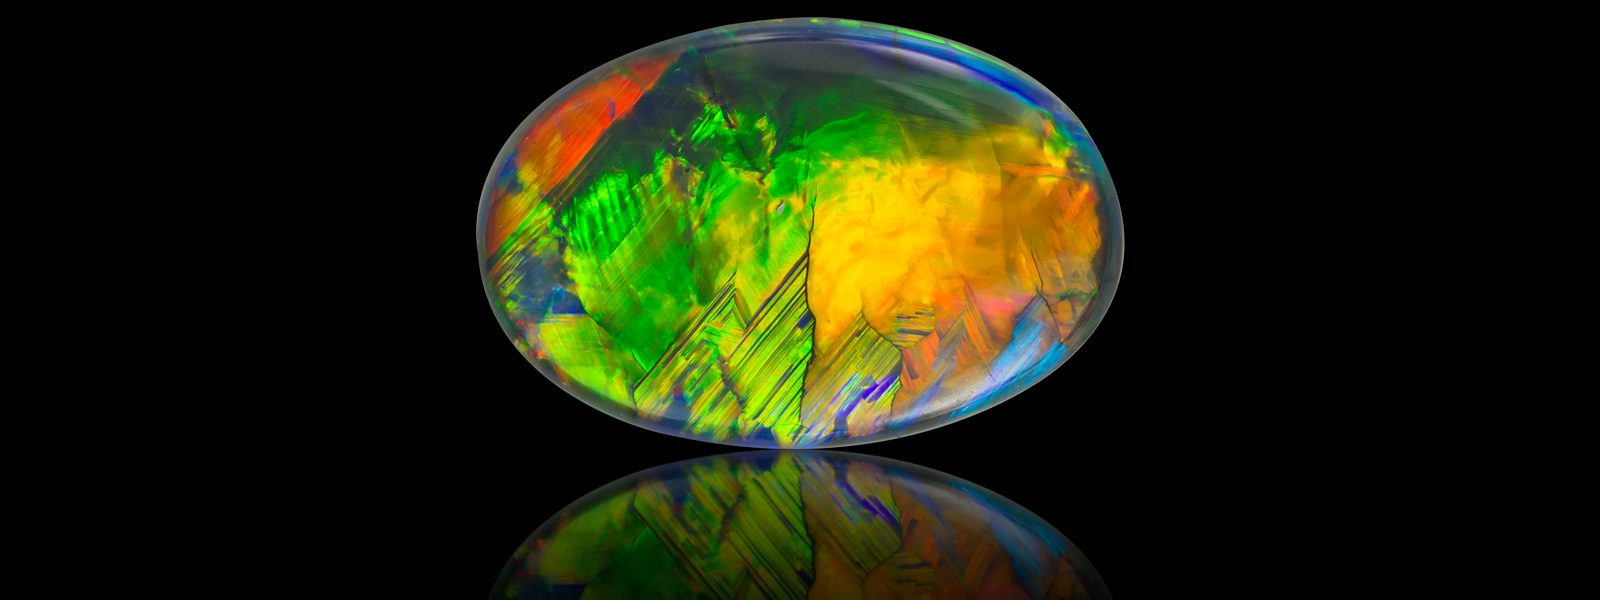 Gemstone Trading Co Opals